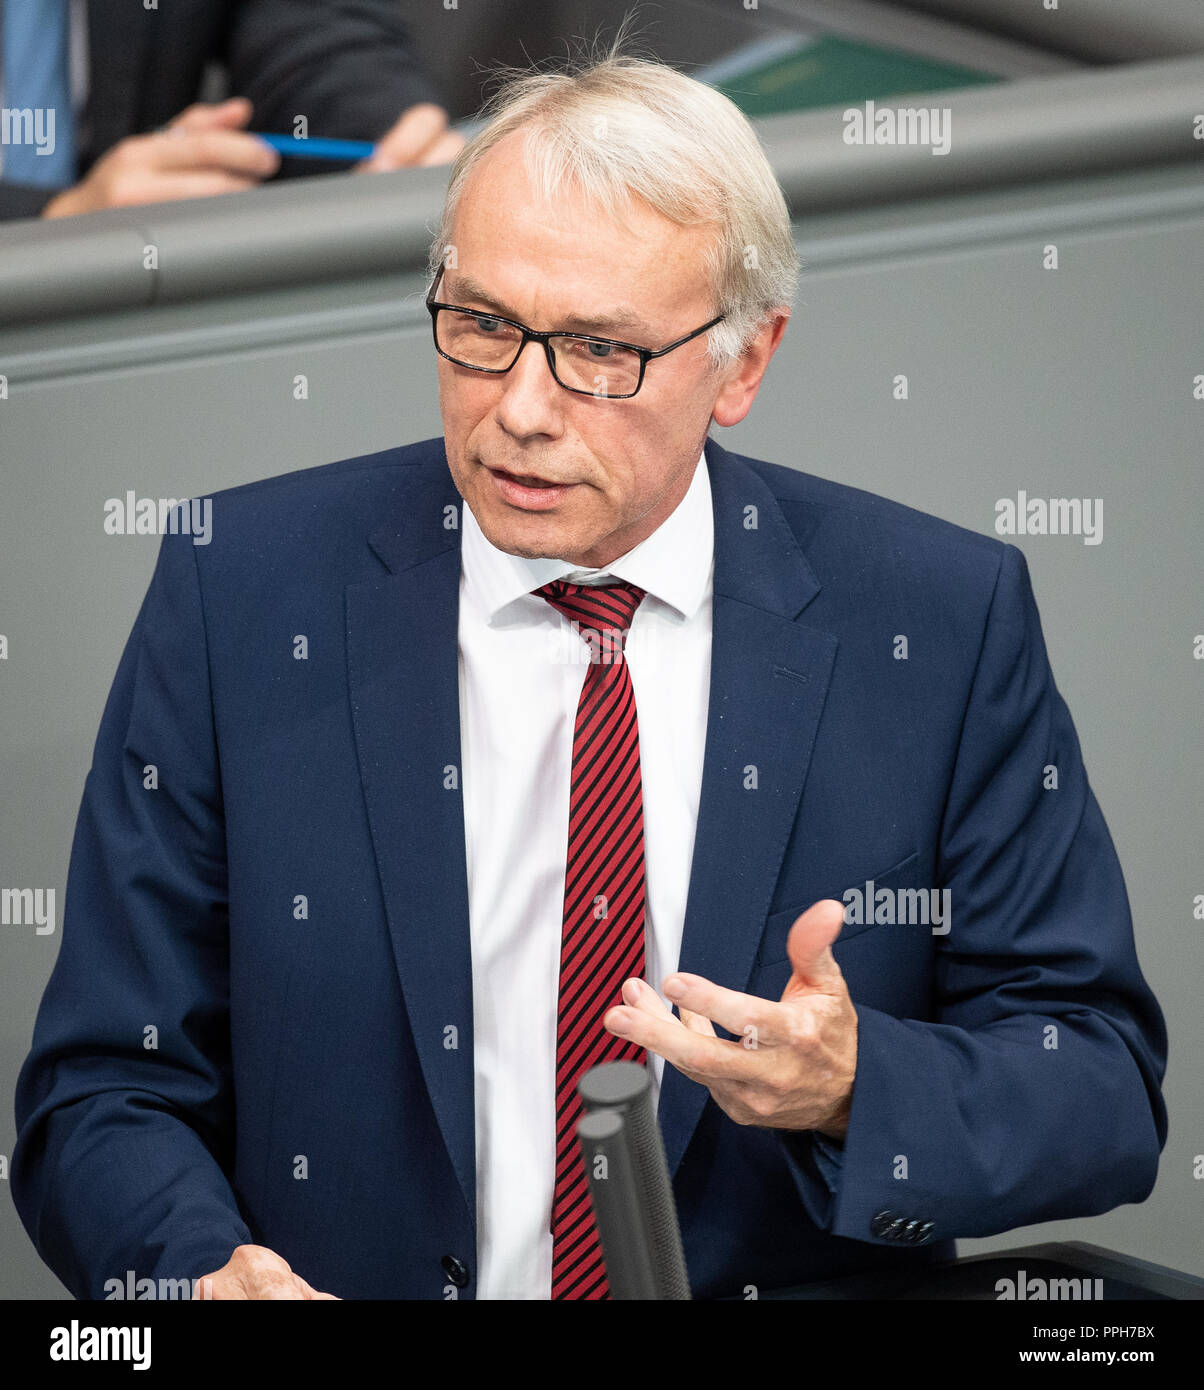 26 September 2018, Berlin: Bernhard Daldrup (SPD), member of the Bundestag, speaks during a session of the Bundestag on the results of the housing summit in Berlin. Photo: Fabian Sommer/dpa - Stock Image